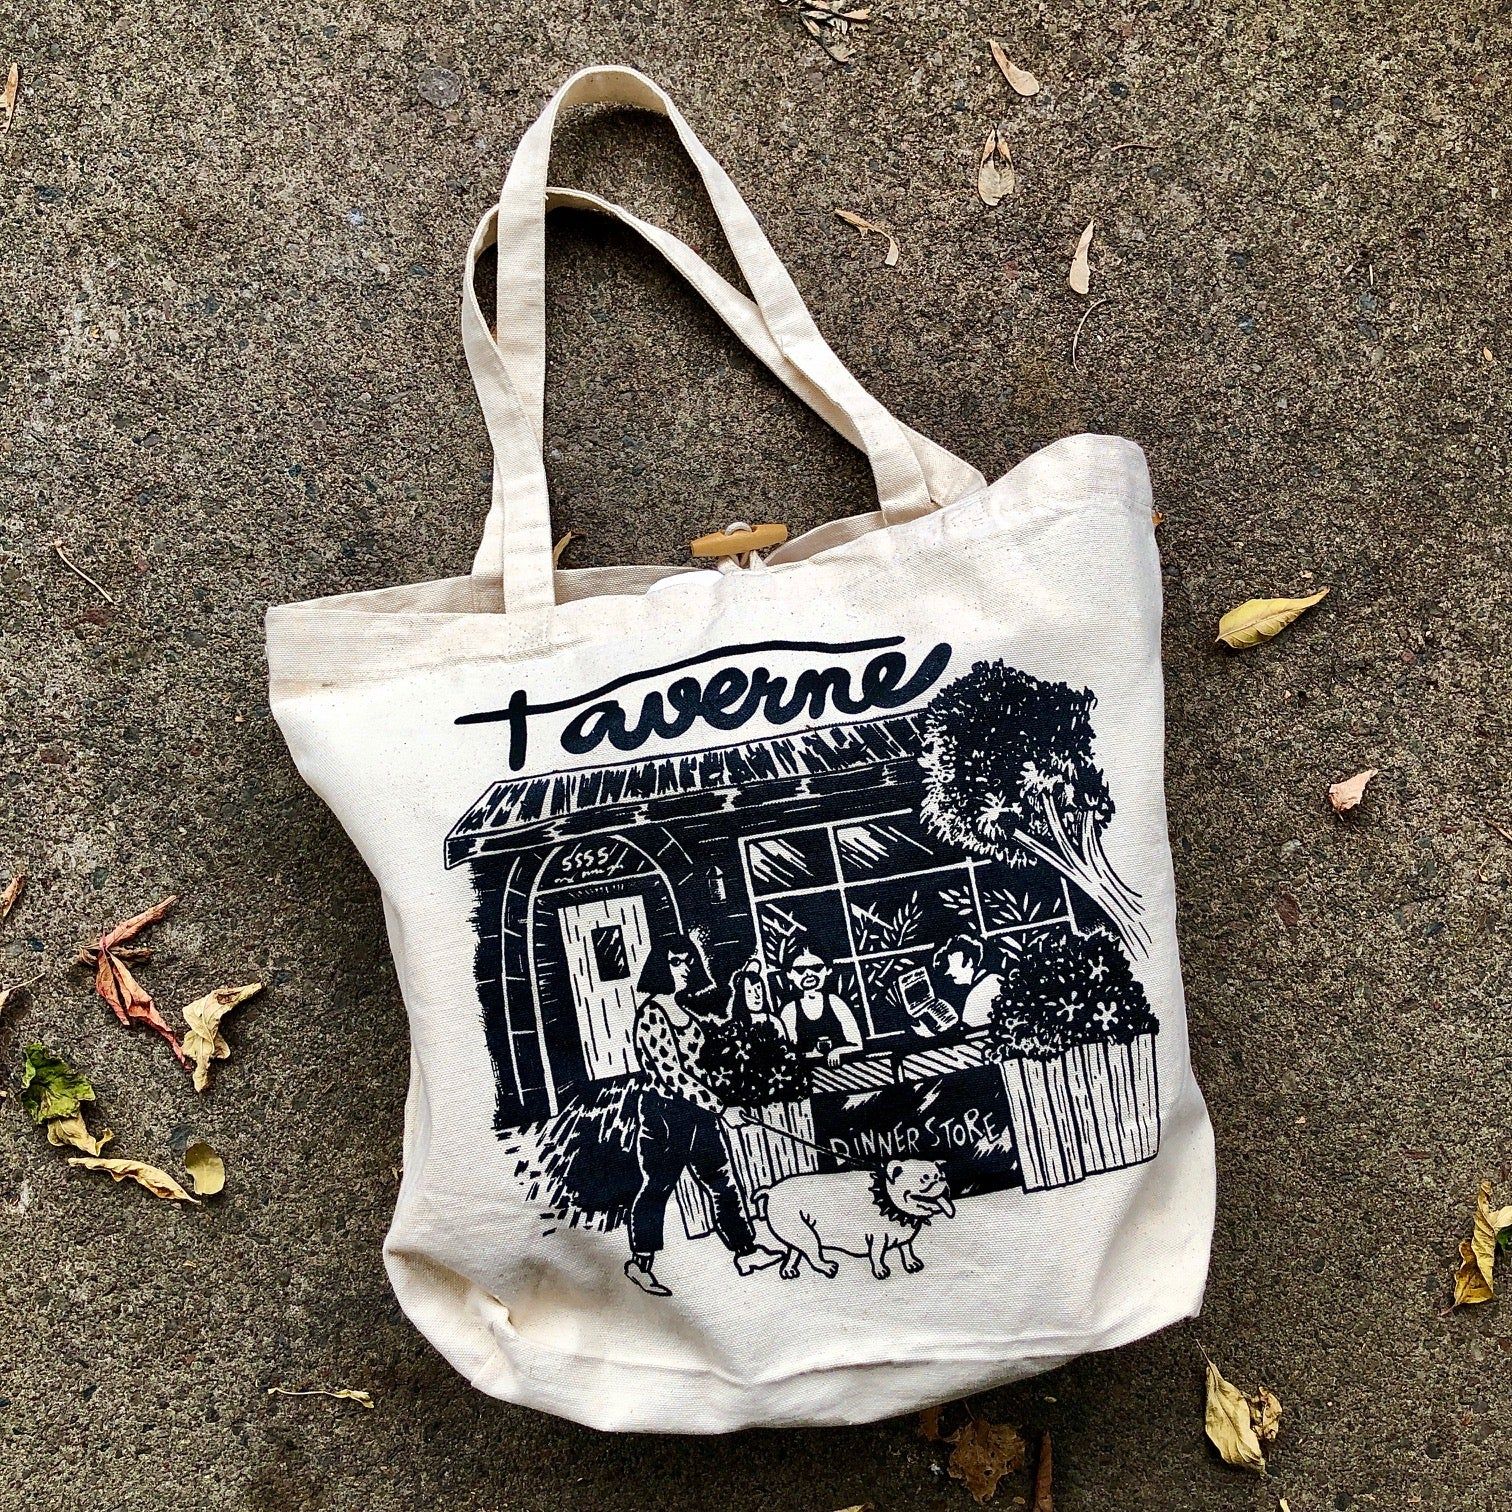 Tavern X DinnerStore Tote